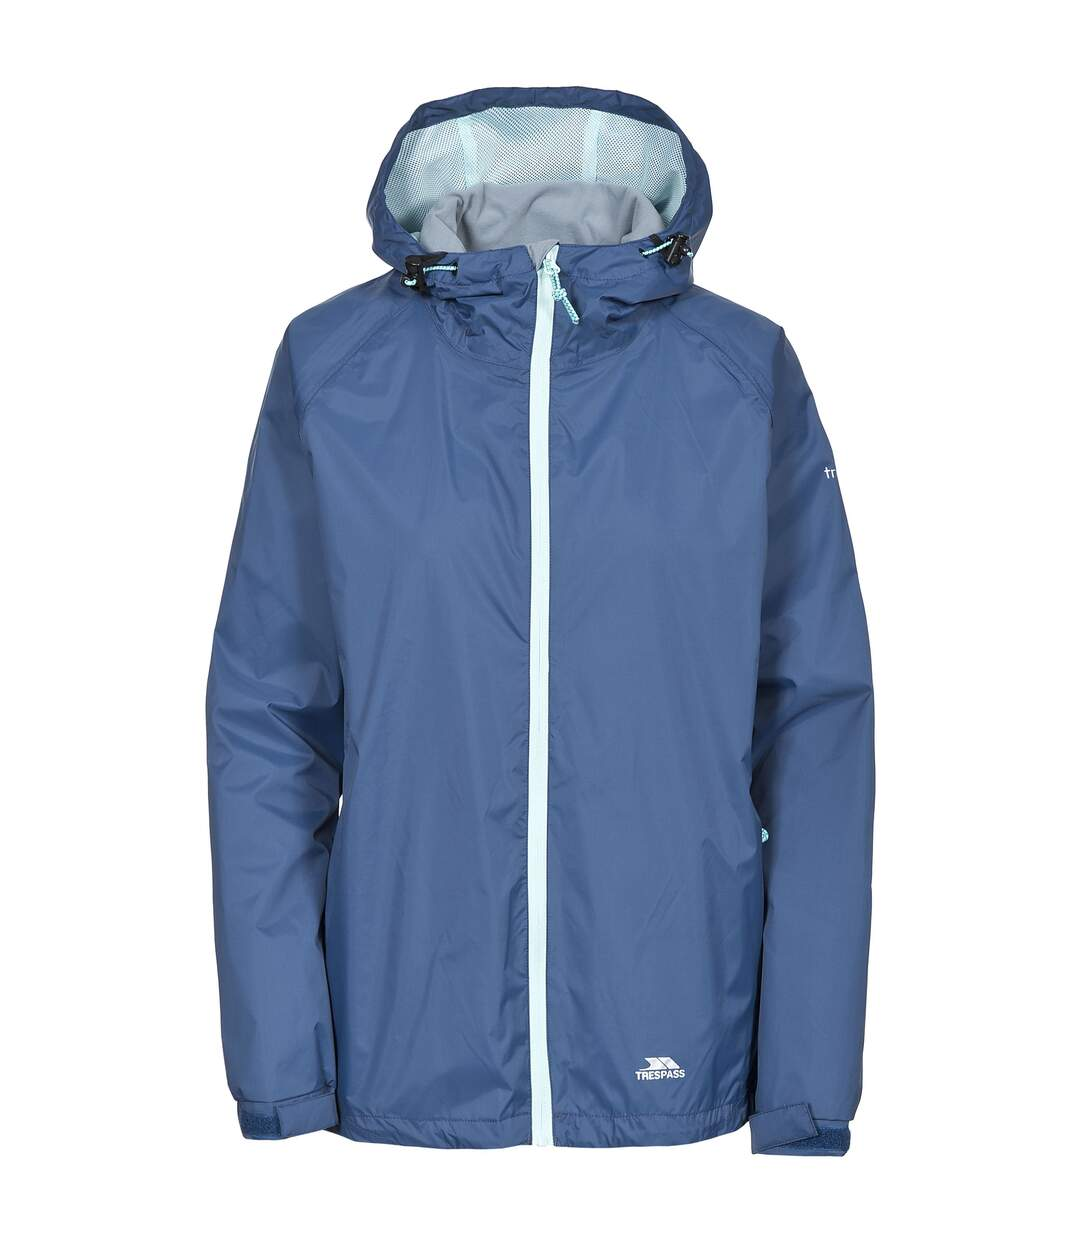 Trespass Womens/Ladies Tayah II Waterproof Shell Jacket (Midnight) - UTTP3378